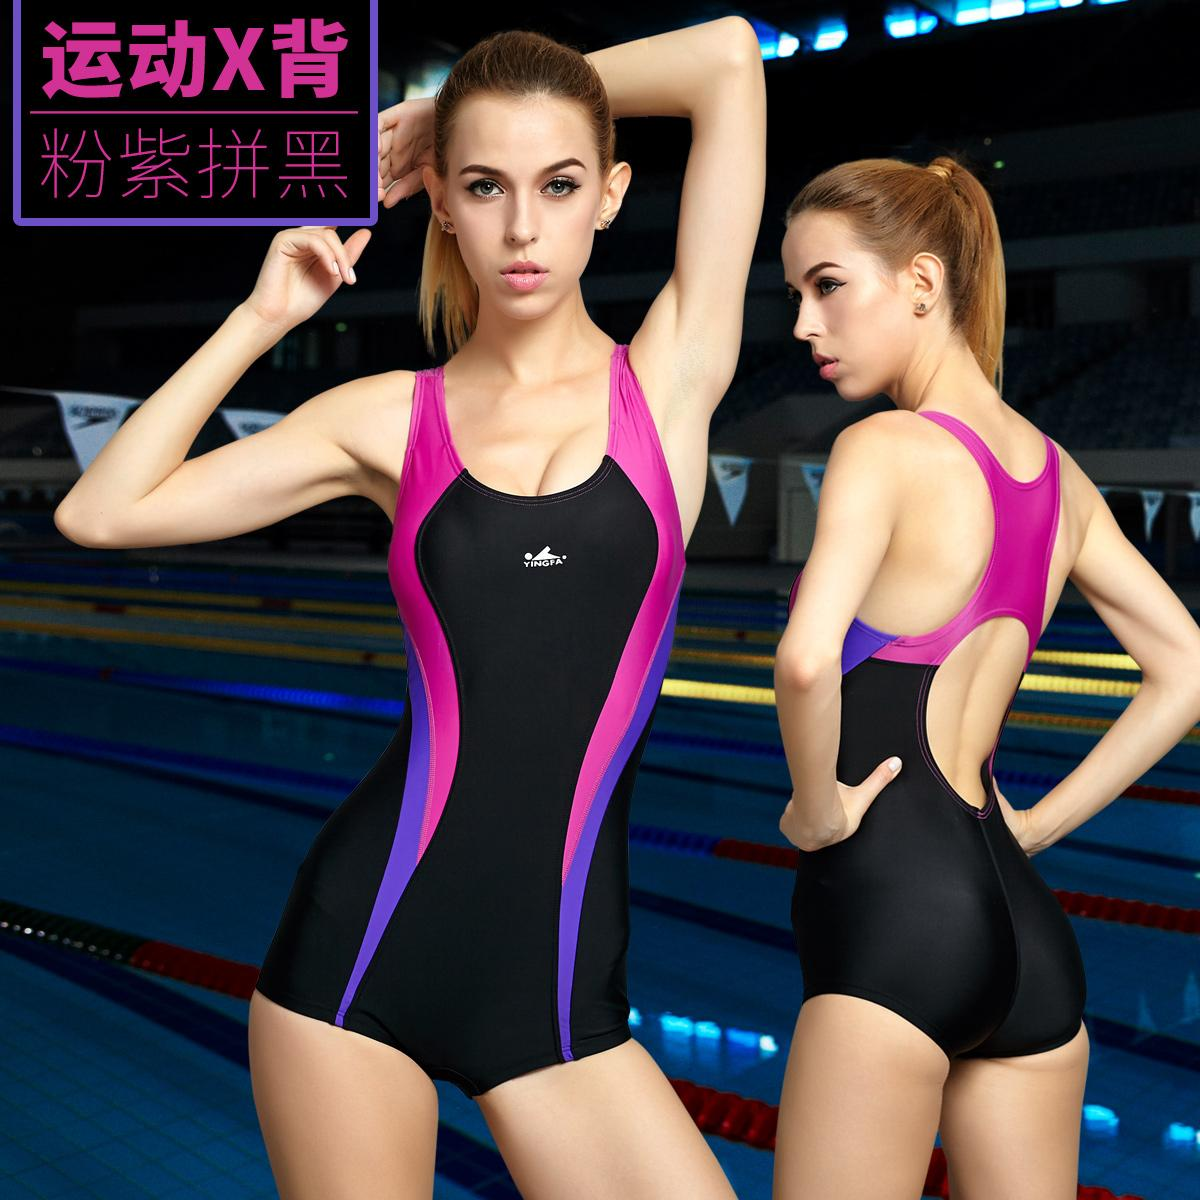 b306ab5cf6e Yingfa Bathing Suit women Hot Springs Sexy One-piece Swimming Suit  Conservative Boxer Slimming Profession